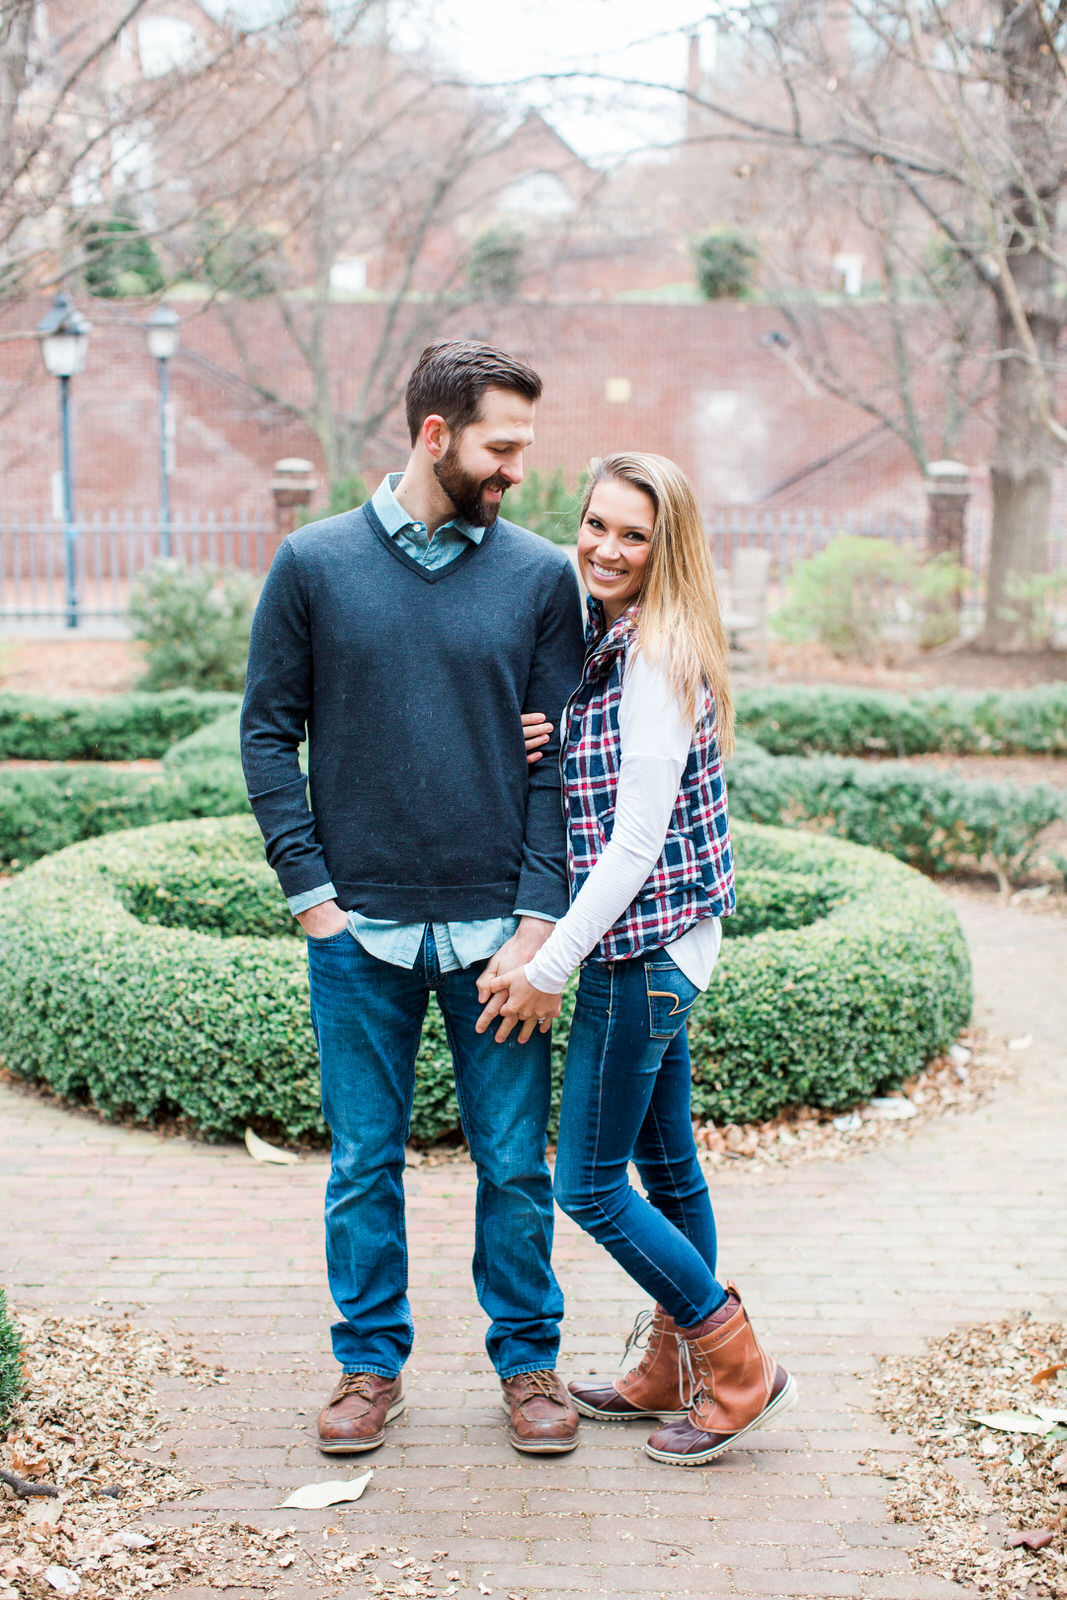 old_town_alexandria_engagements-22.jpg